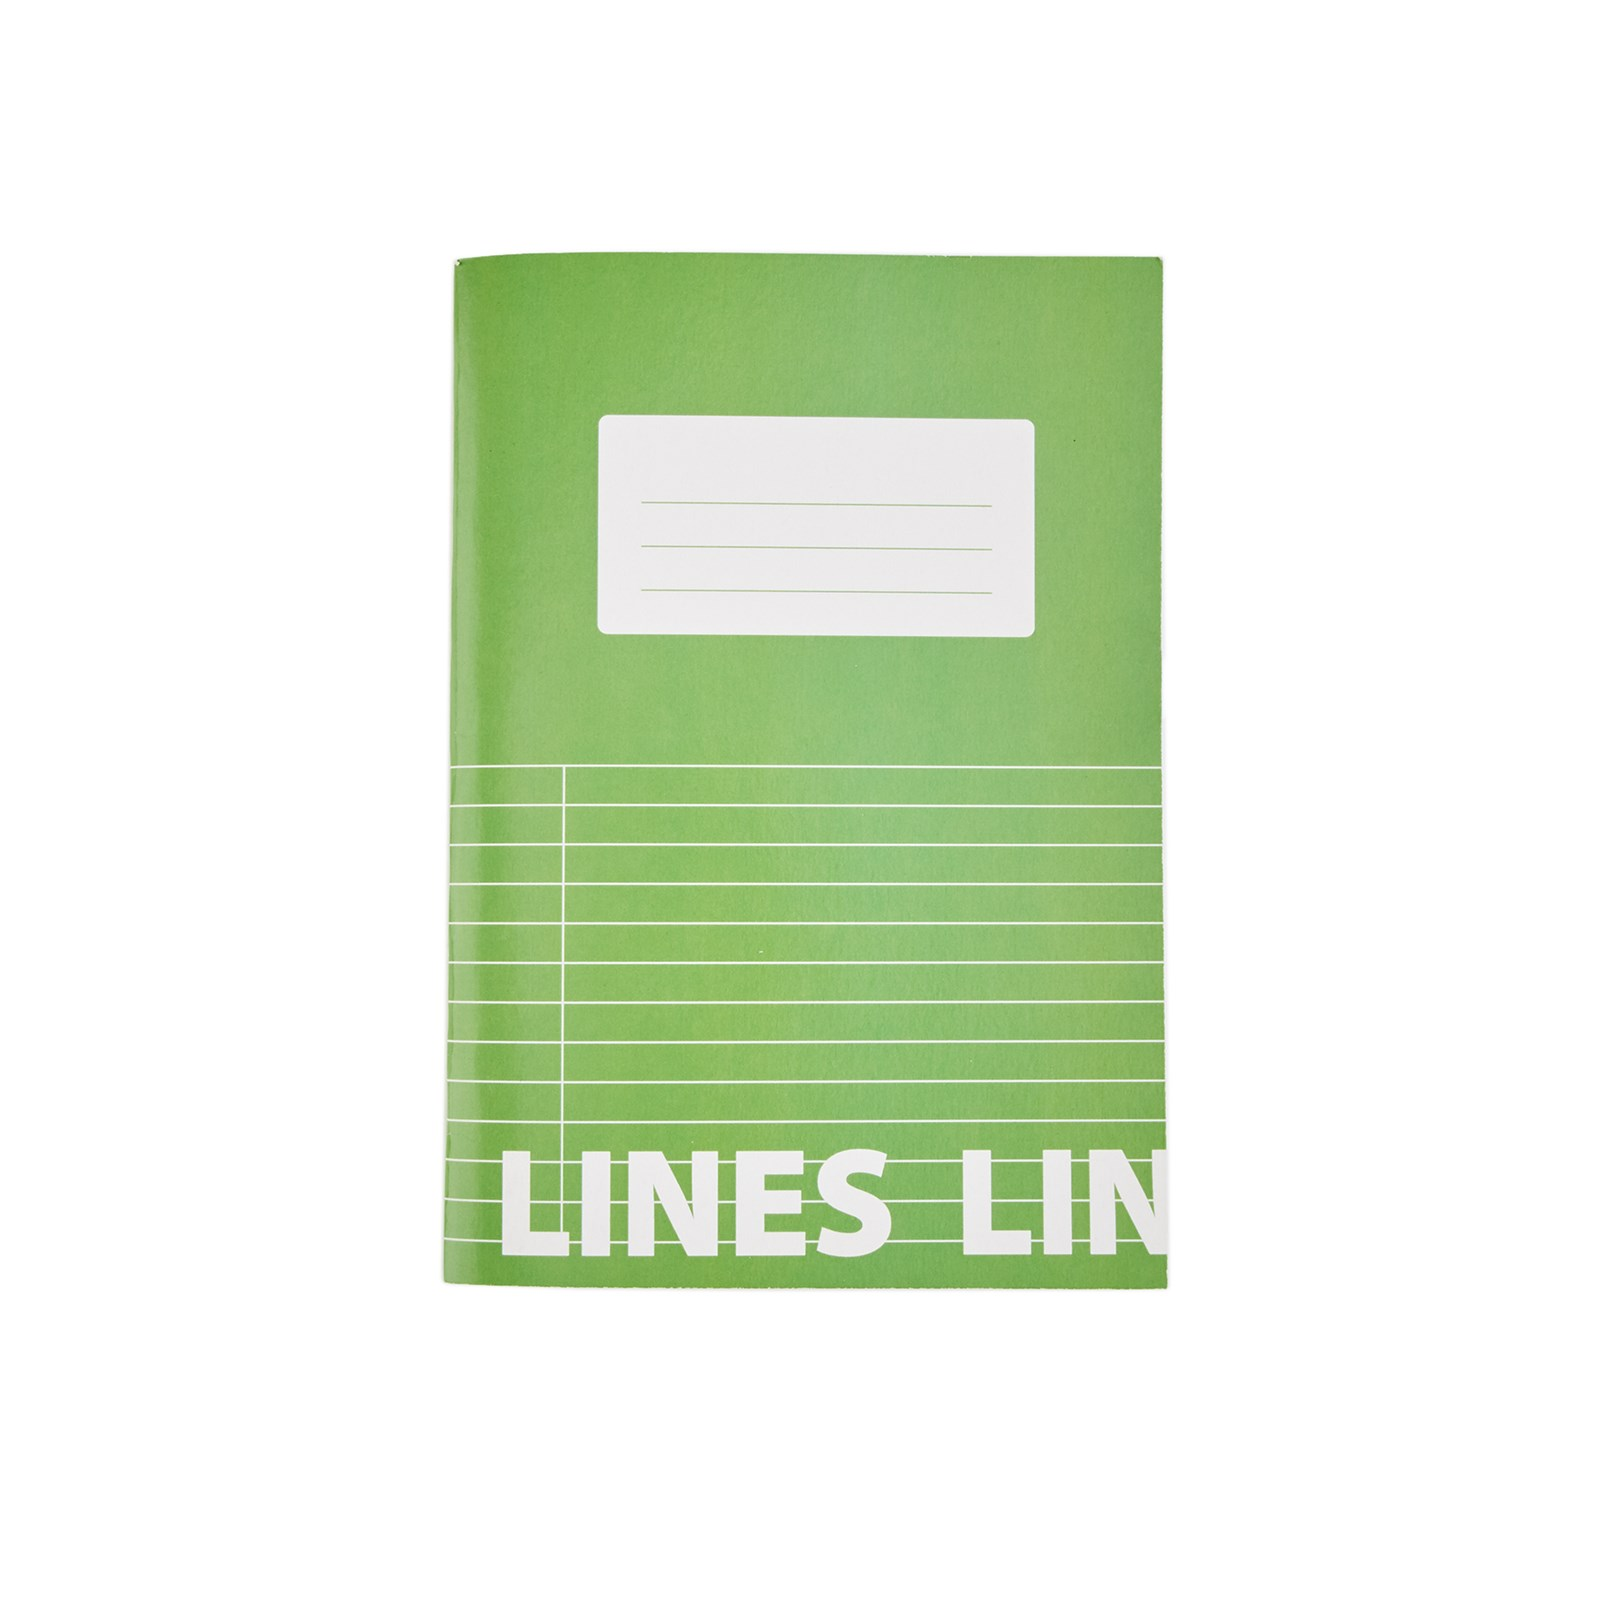 Classmates Green A5 Tough Cover Exercise Books 80-Page, 8mm Ruled With Margin - Pack of 50